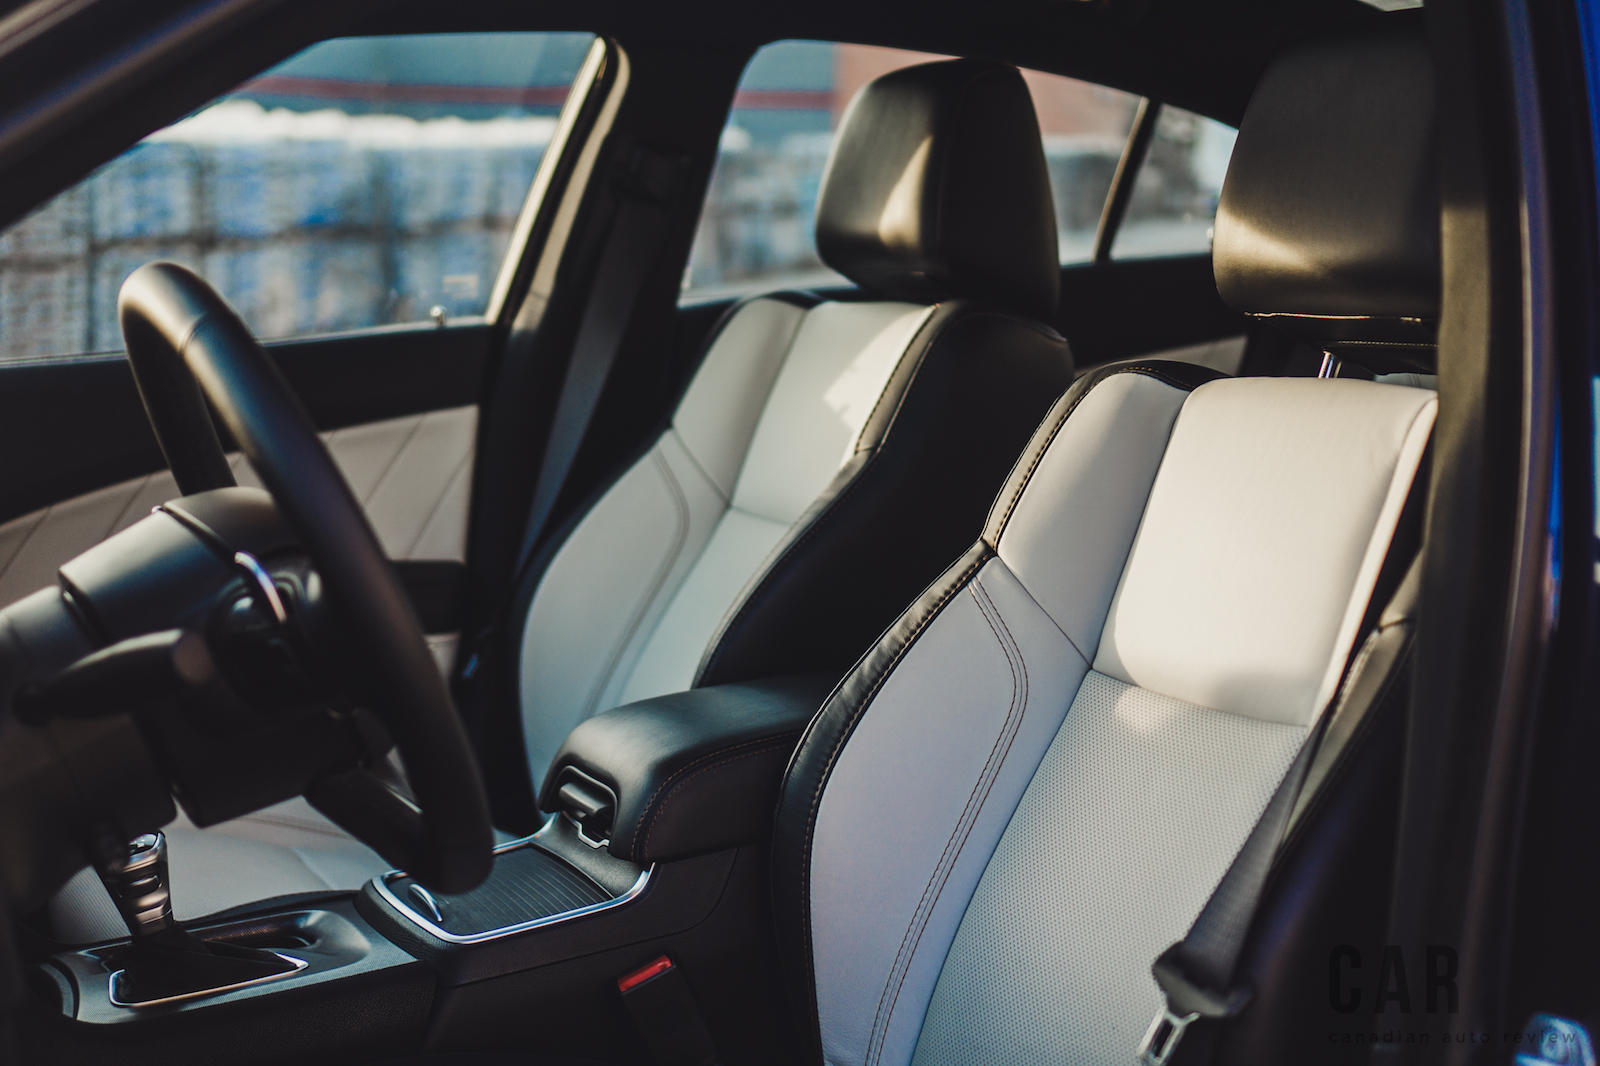 Review 2016 Dodge Charger Sxt Awd Canadian Auto 1969 Interior Brothers Easter Egg Black White Seats